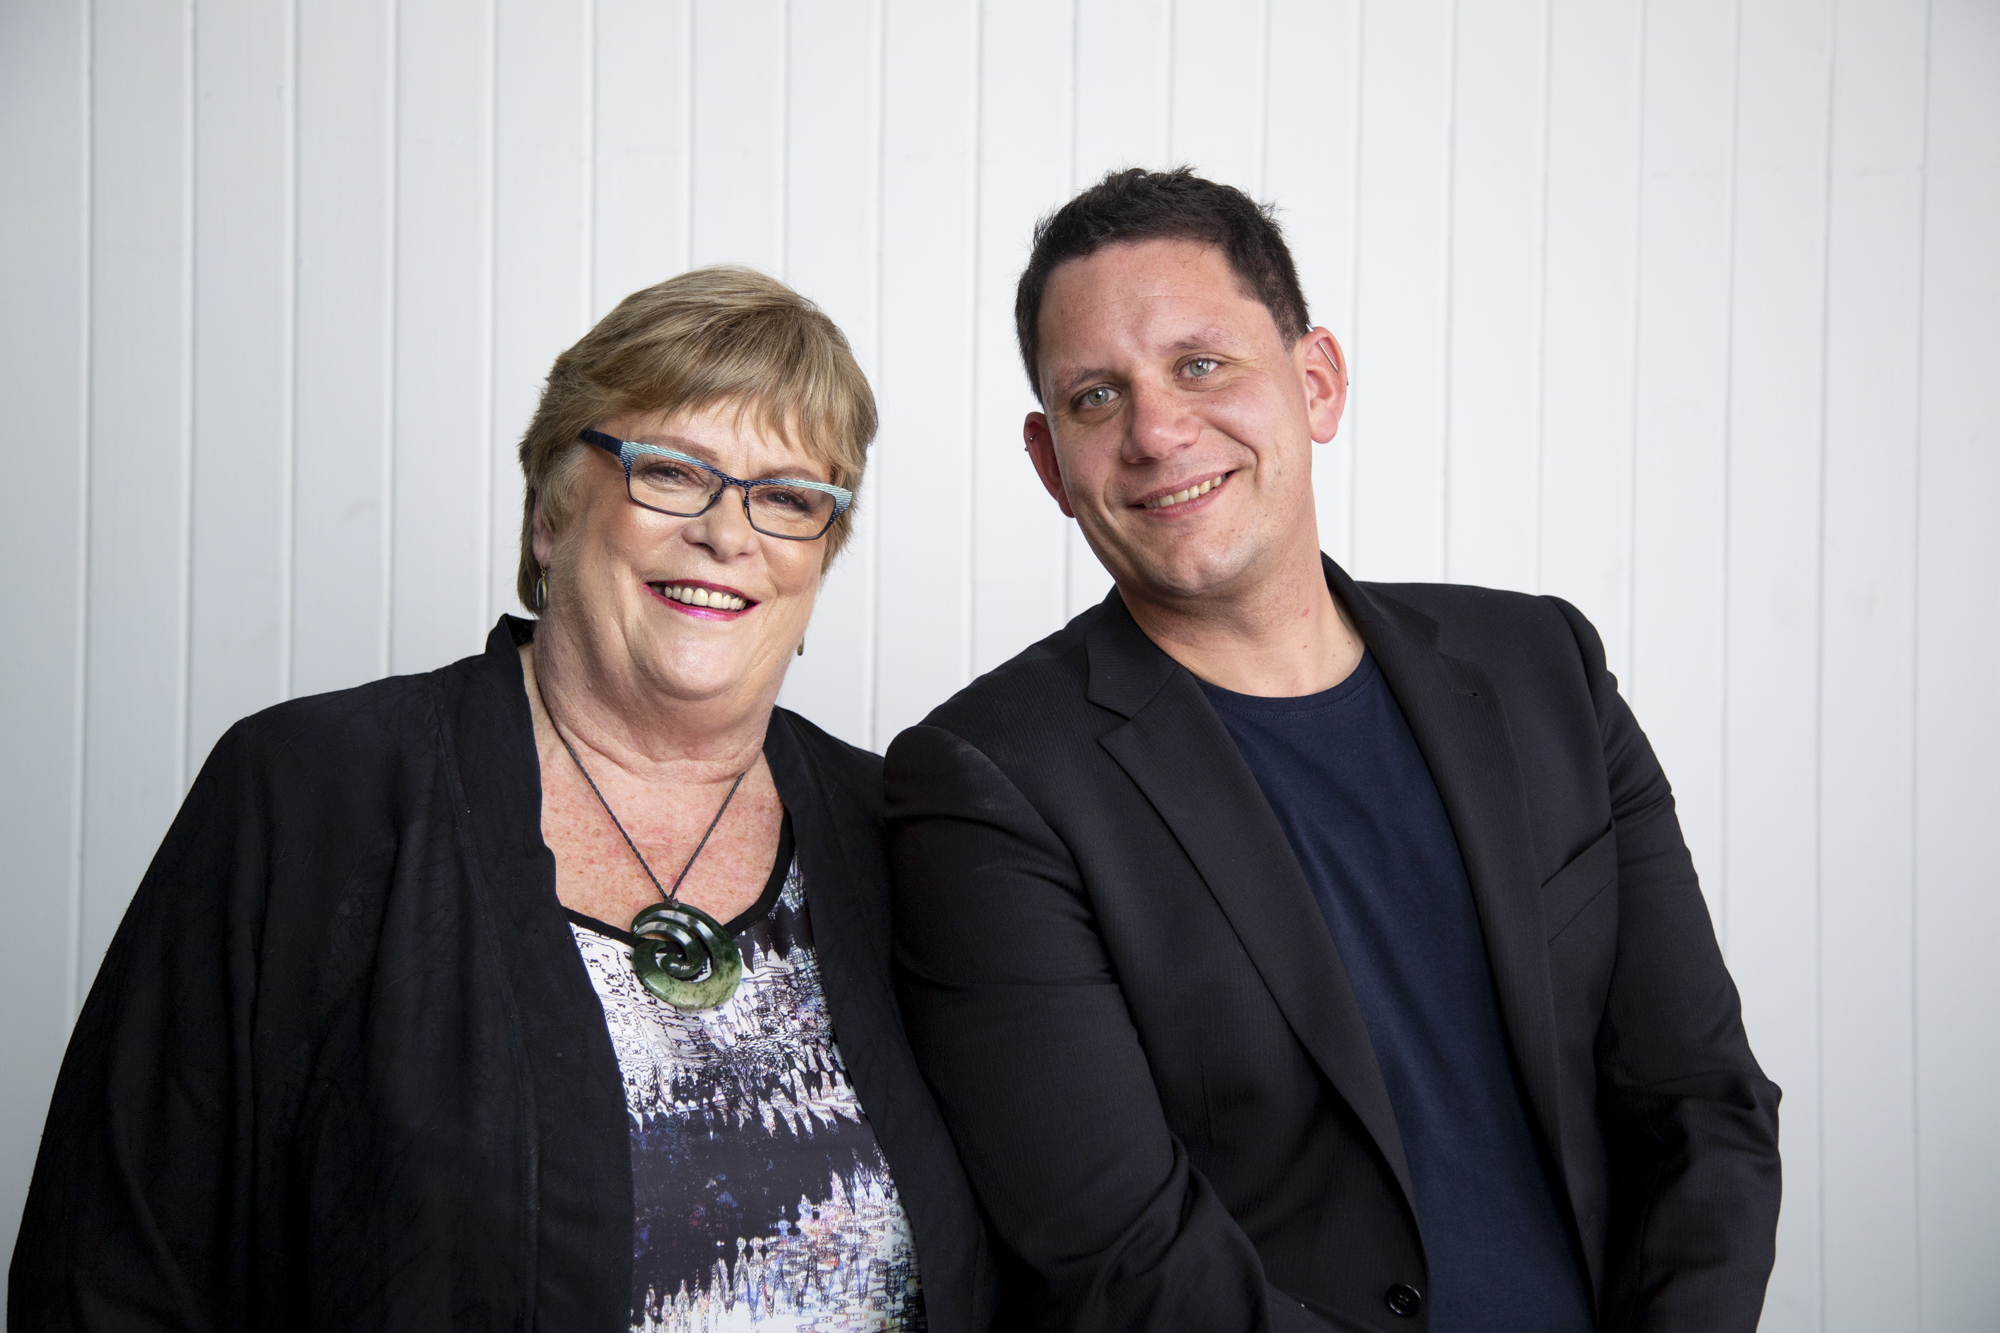 Glenda Hughes & Troy Mihaka - Two of our Candidates for Greater Wellington Regional Council.